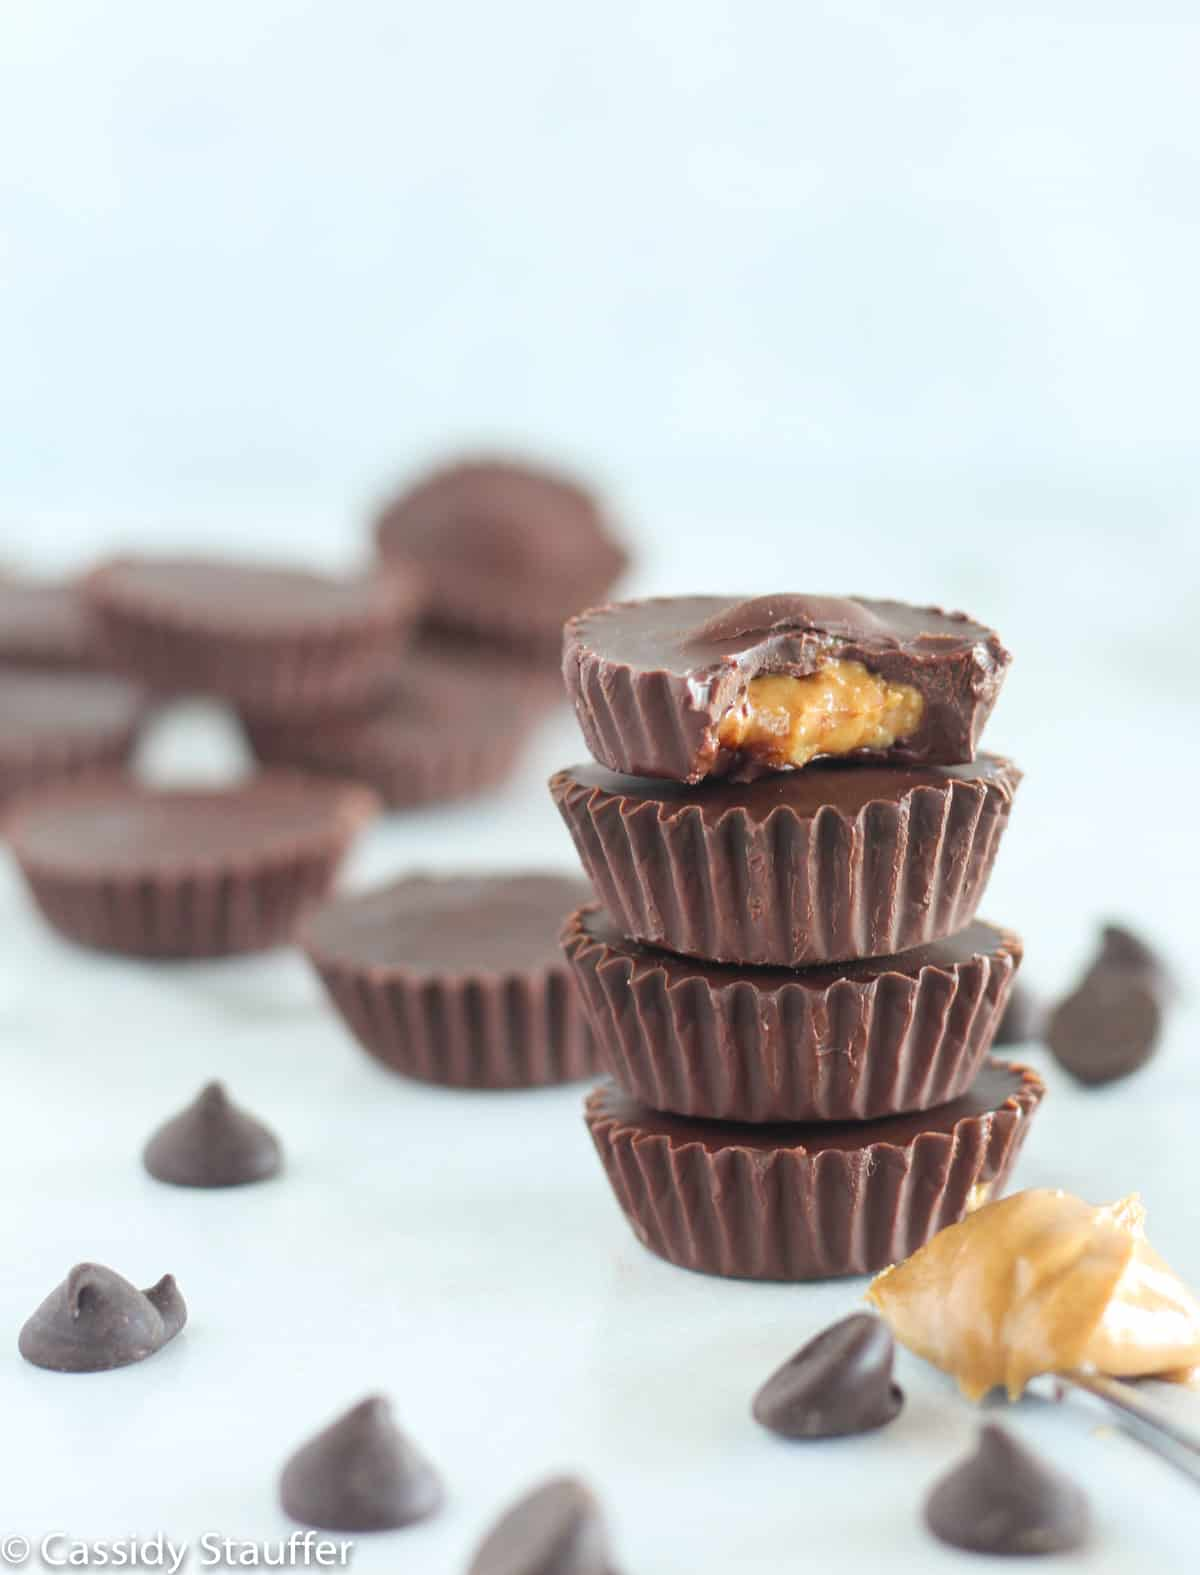 peanut butter cups stacked with bite taken out of top one